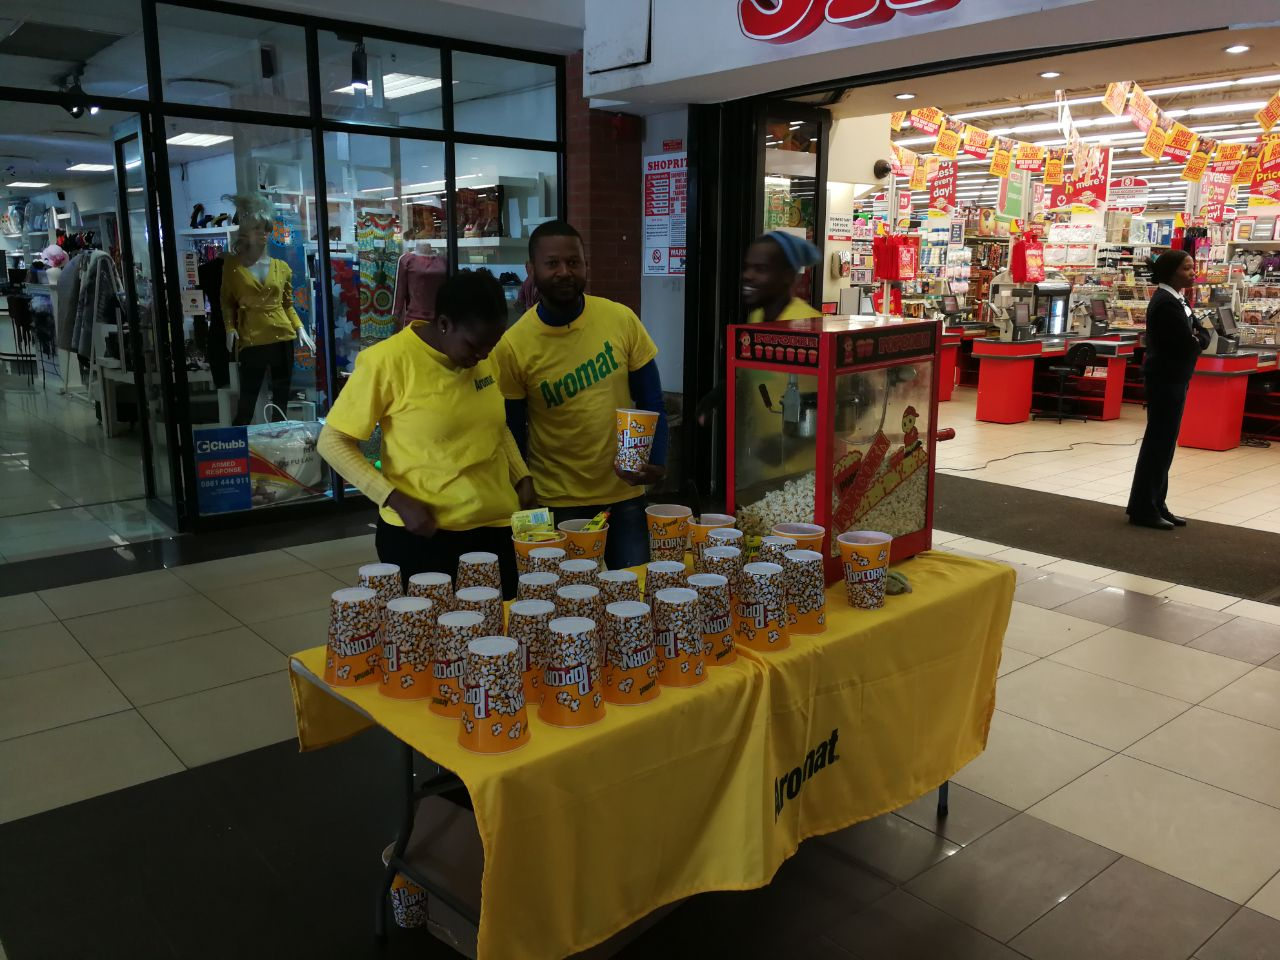 Mall Activation Aromat